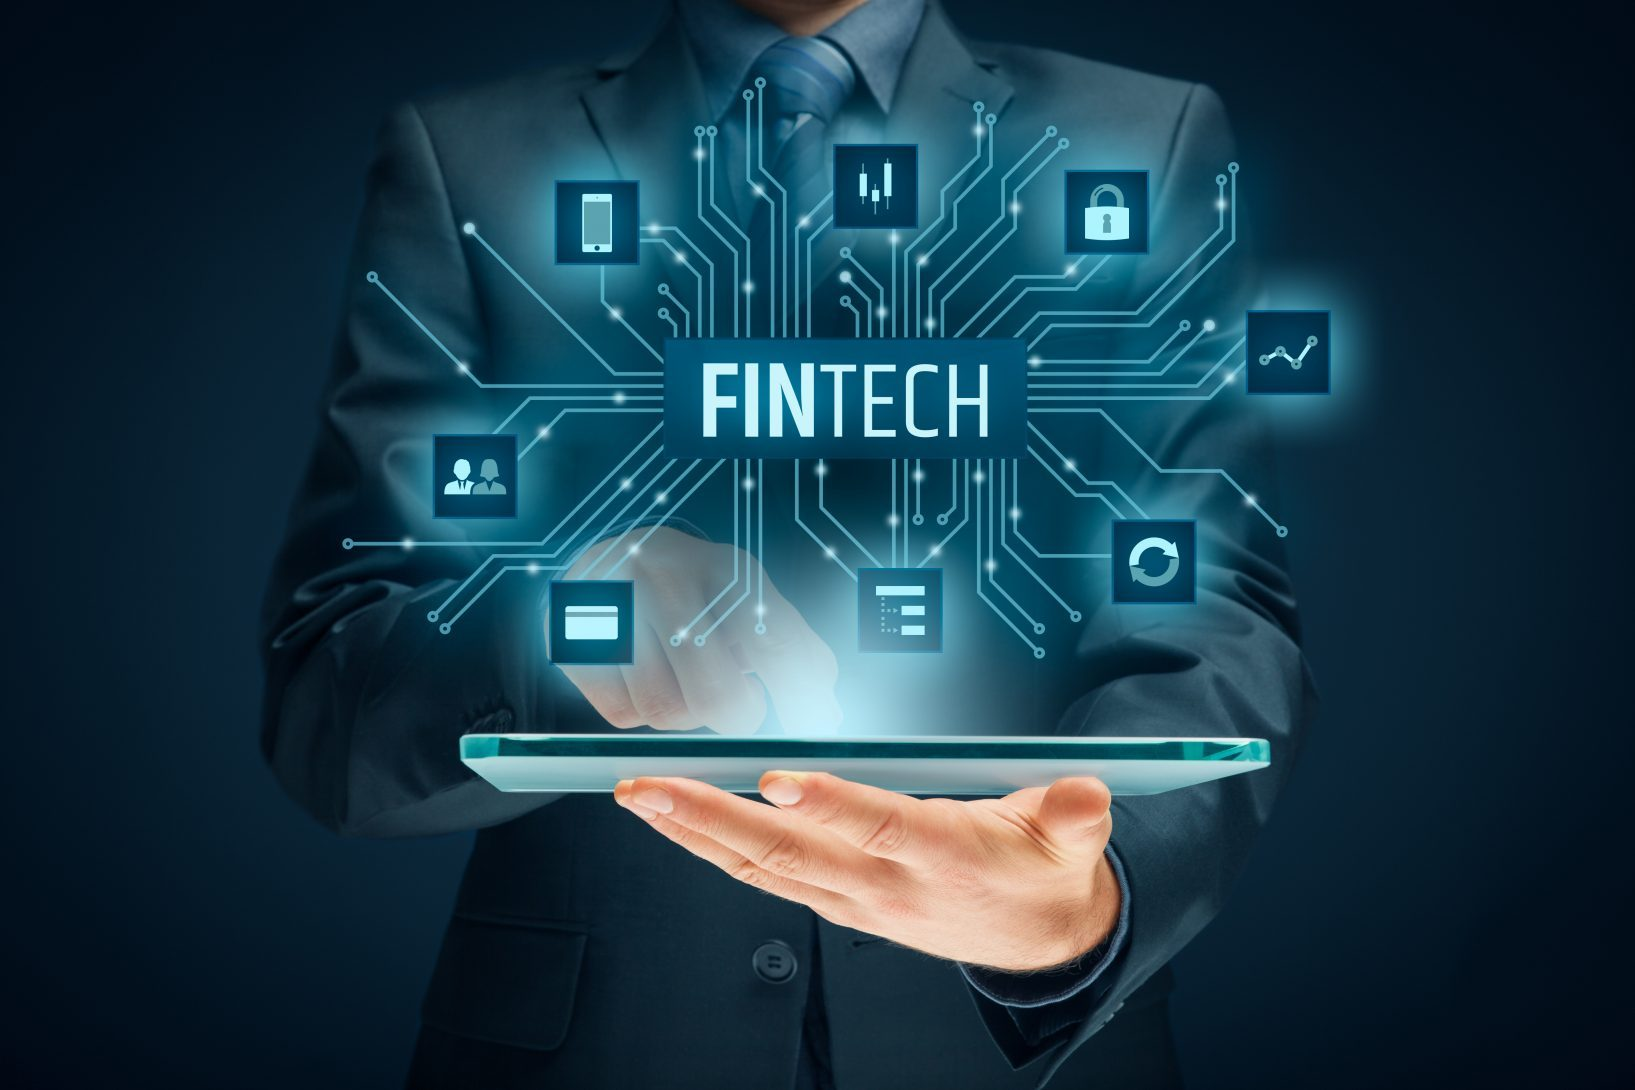 Fintech Start-ups Made a Revolution in the Banking